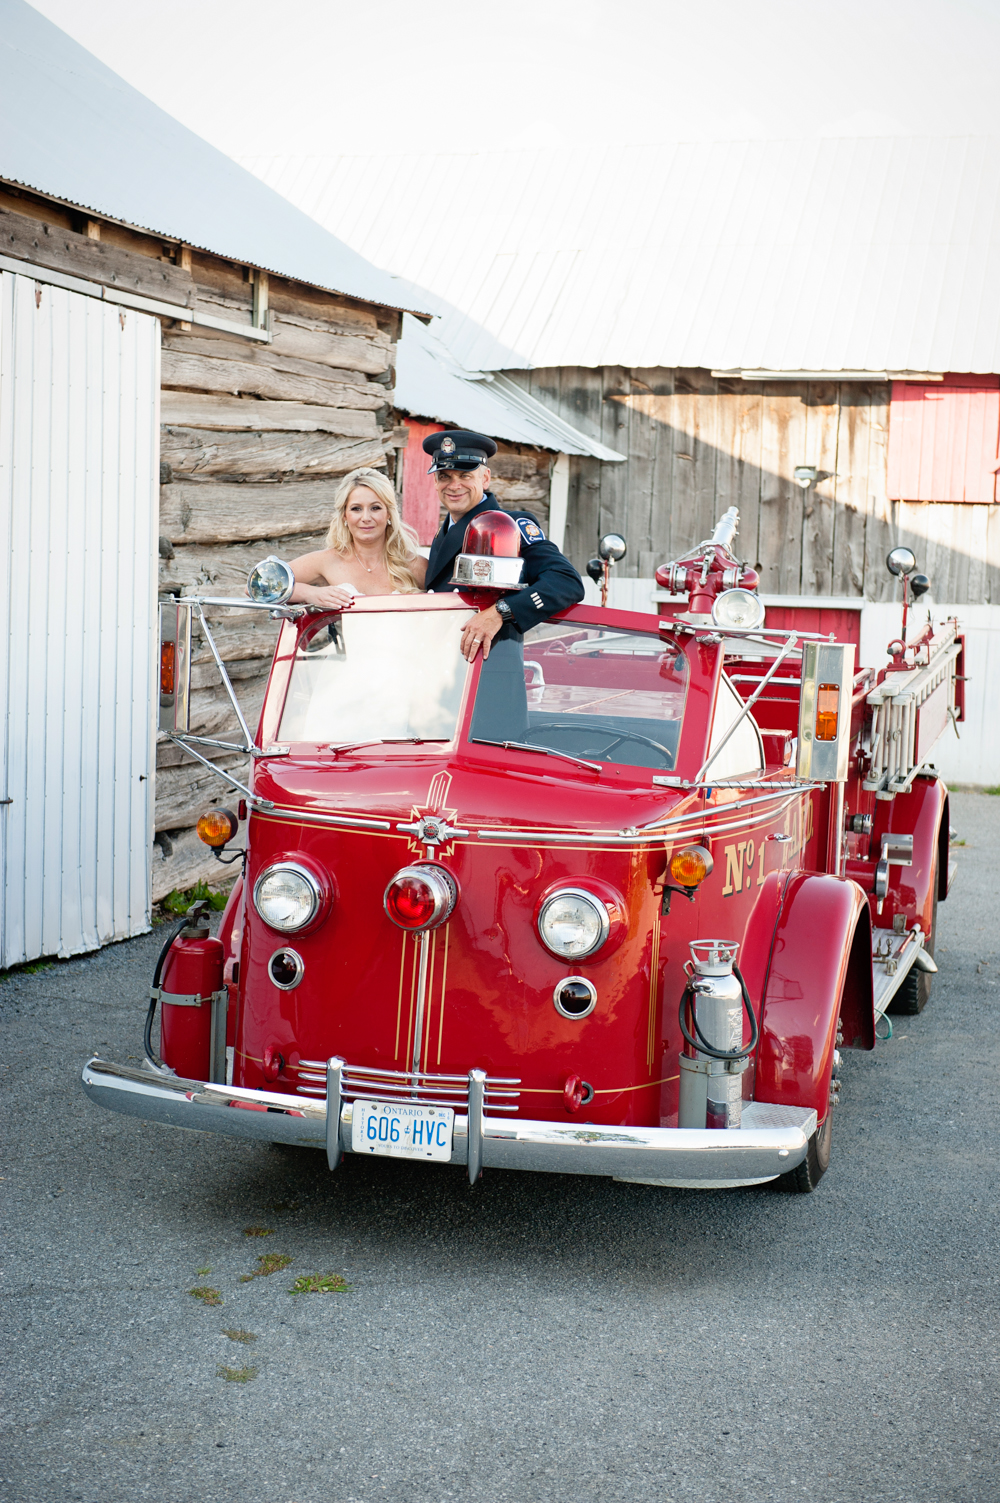 black-lamb-photography-ottawa-wedding-photographer-fire-fighter-themed-wedding-shoot-7